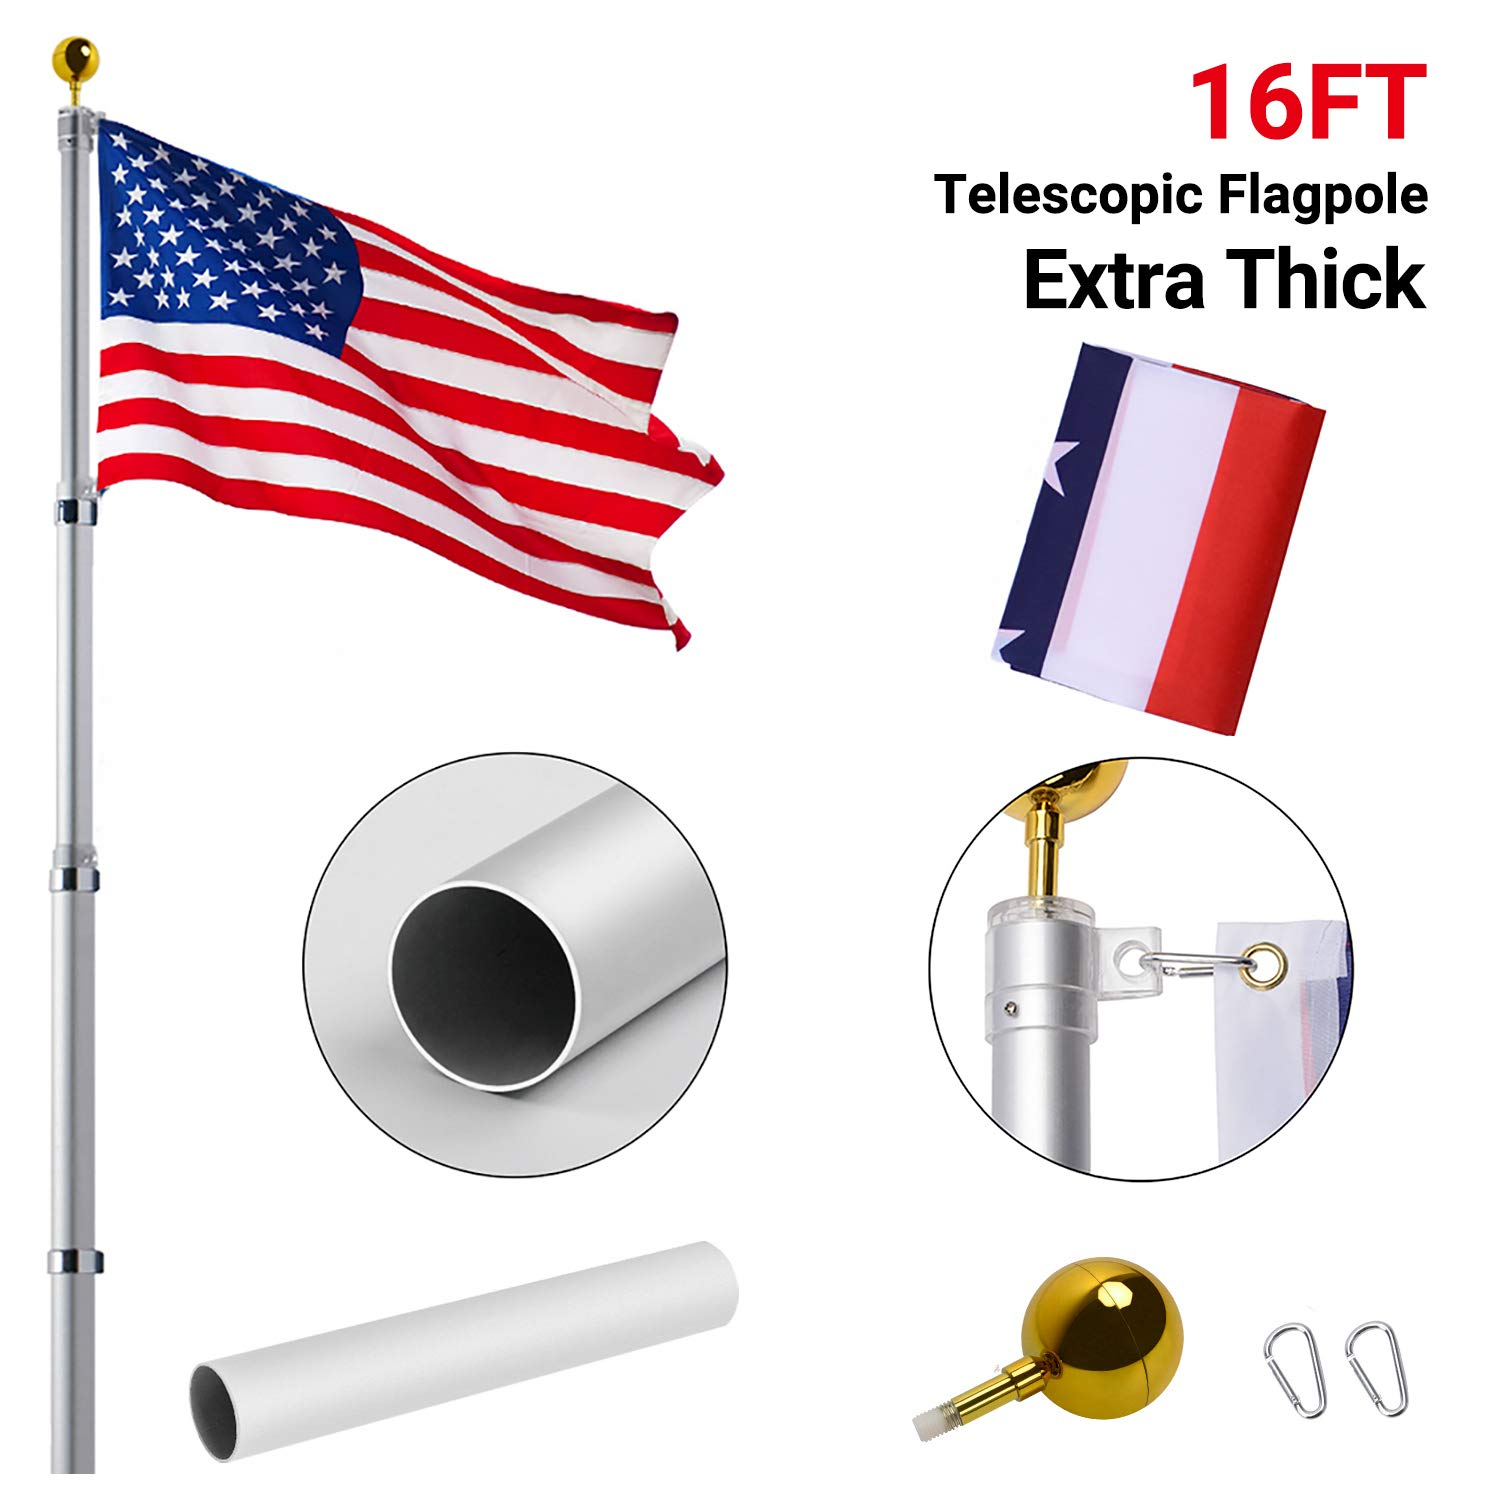 Gientan 16FT Telescopic Flag Pole, 16 Gauge Aluminum Flagpole Kit with Free 3x5 American Flag, Portable for Residential Garden Outdoor RV